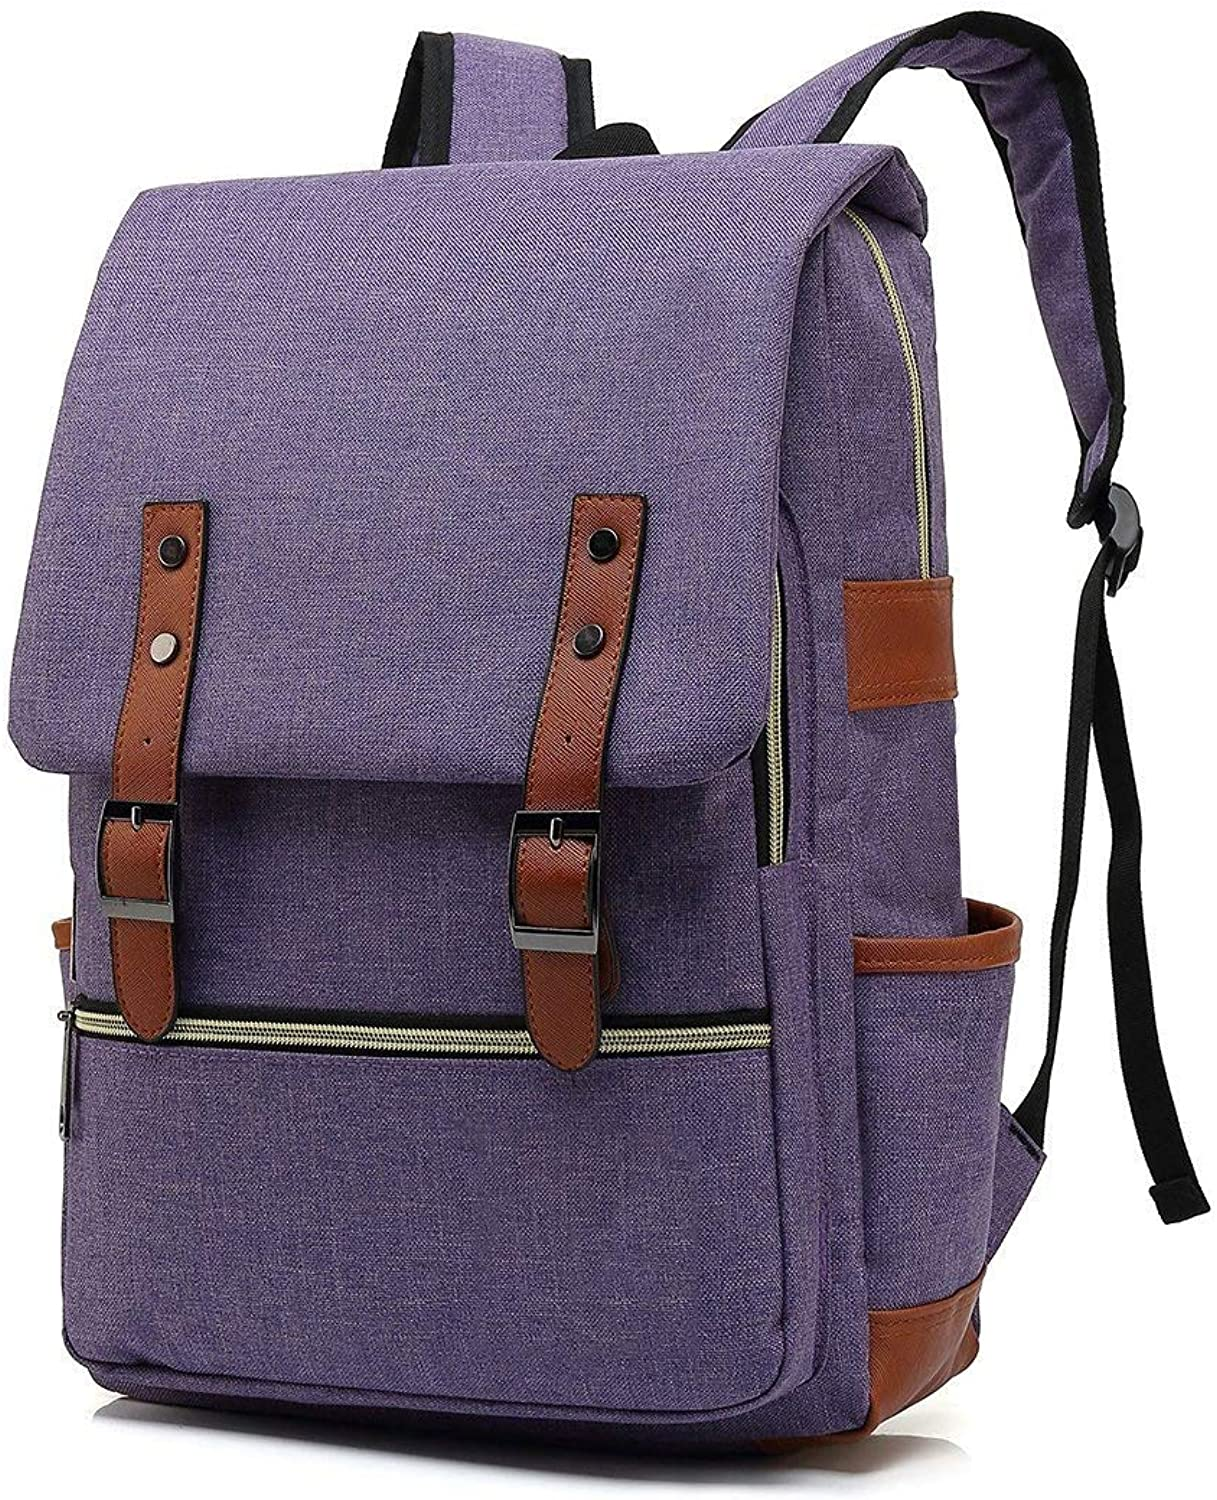 XHHWZB Vintage Laptop Backpack for Women Men,School College Backpack Fashion Backpack Fits 15 inch Notebook